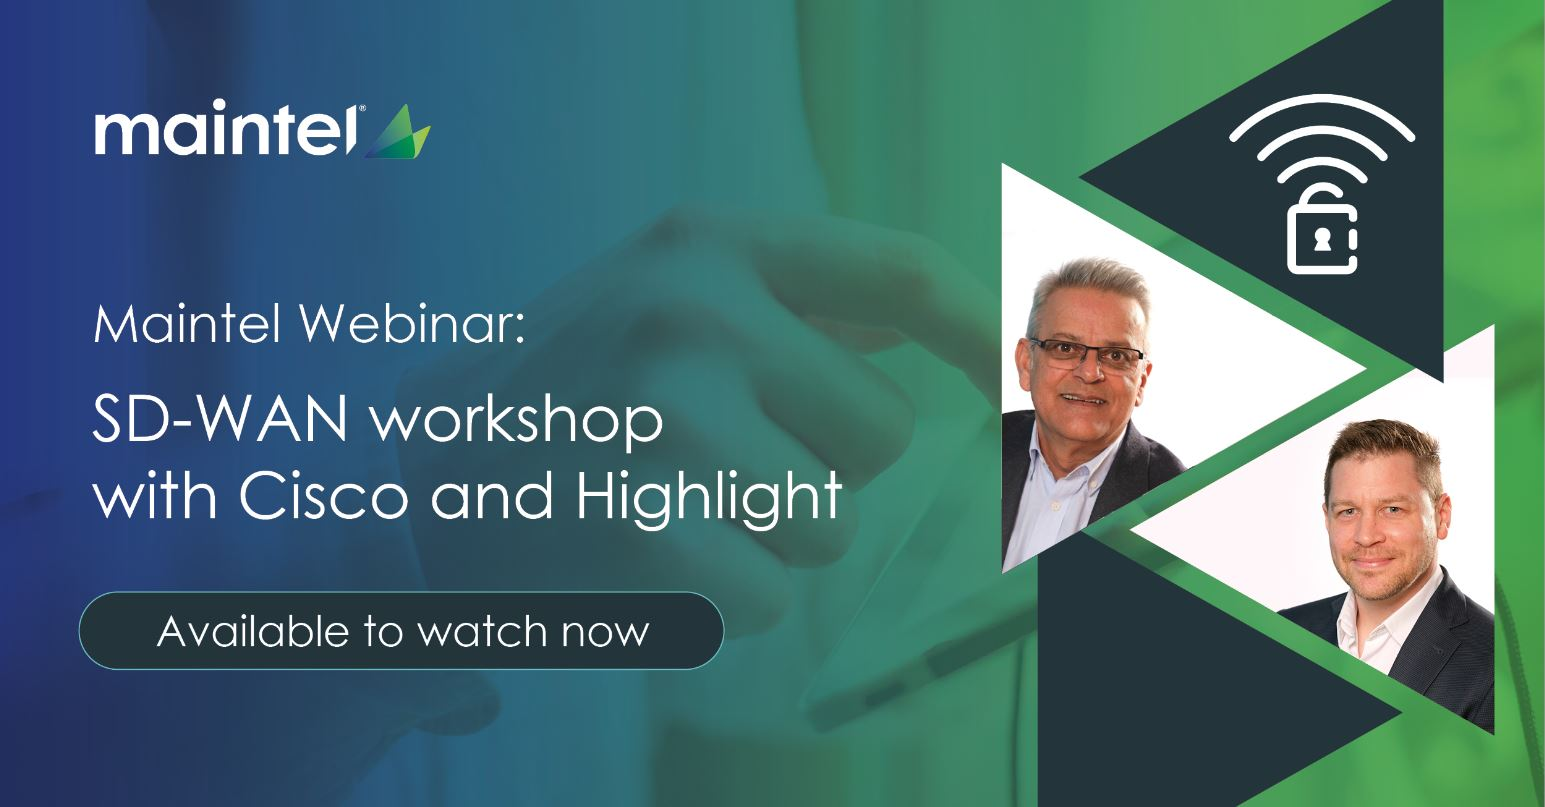 SD-WAN workshop with Cisco and Highlight